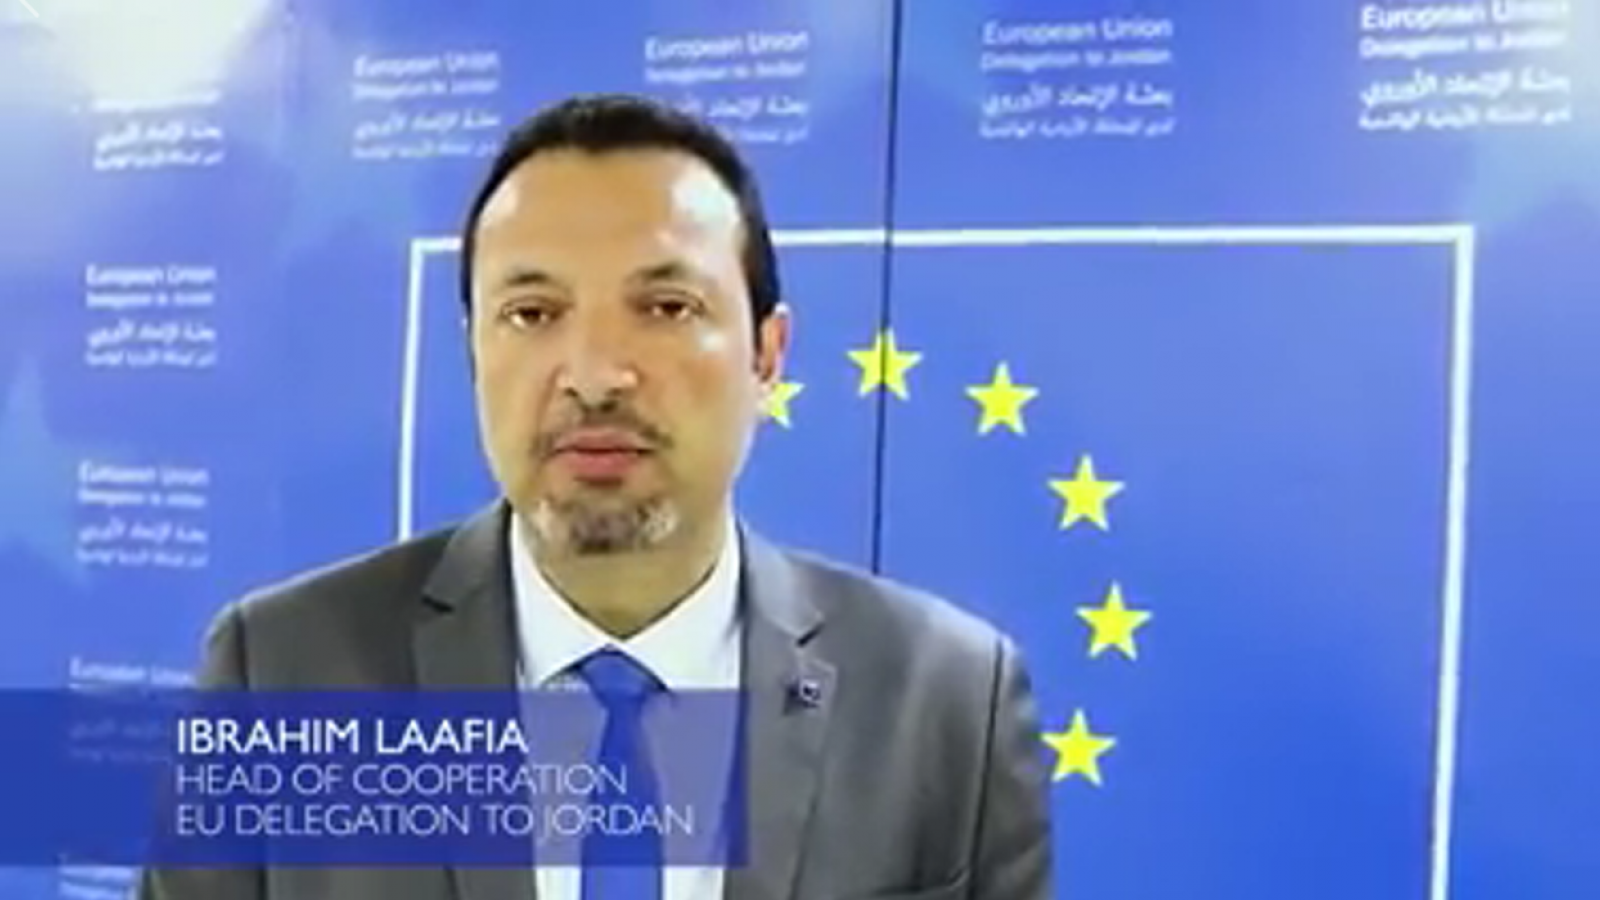 Ibrahim Laafia, Head of Cooperation at the European Delegation in Jordan